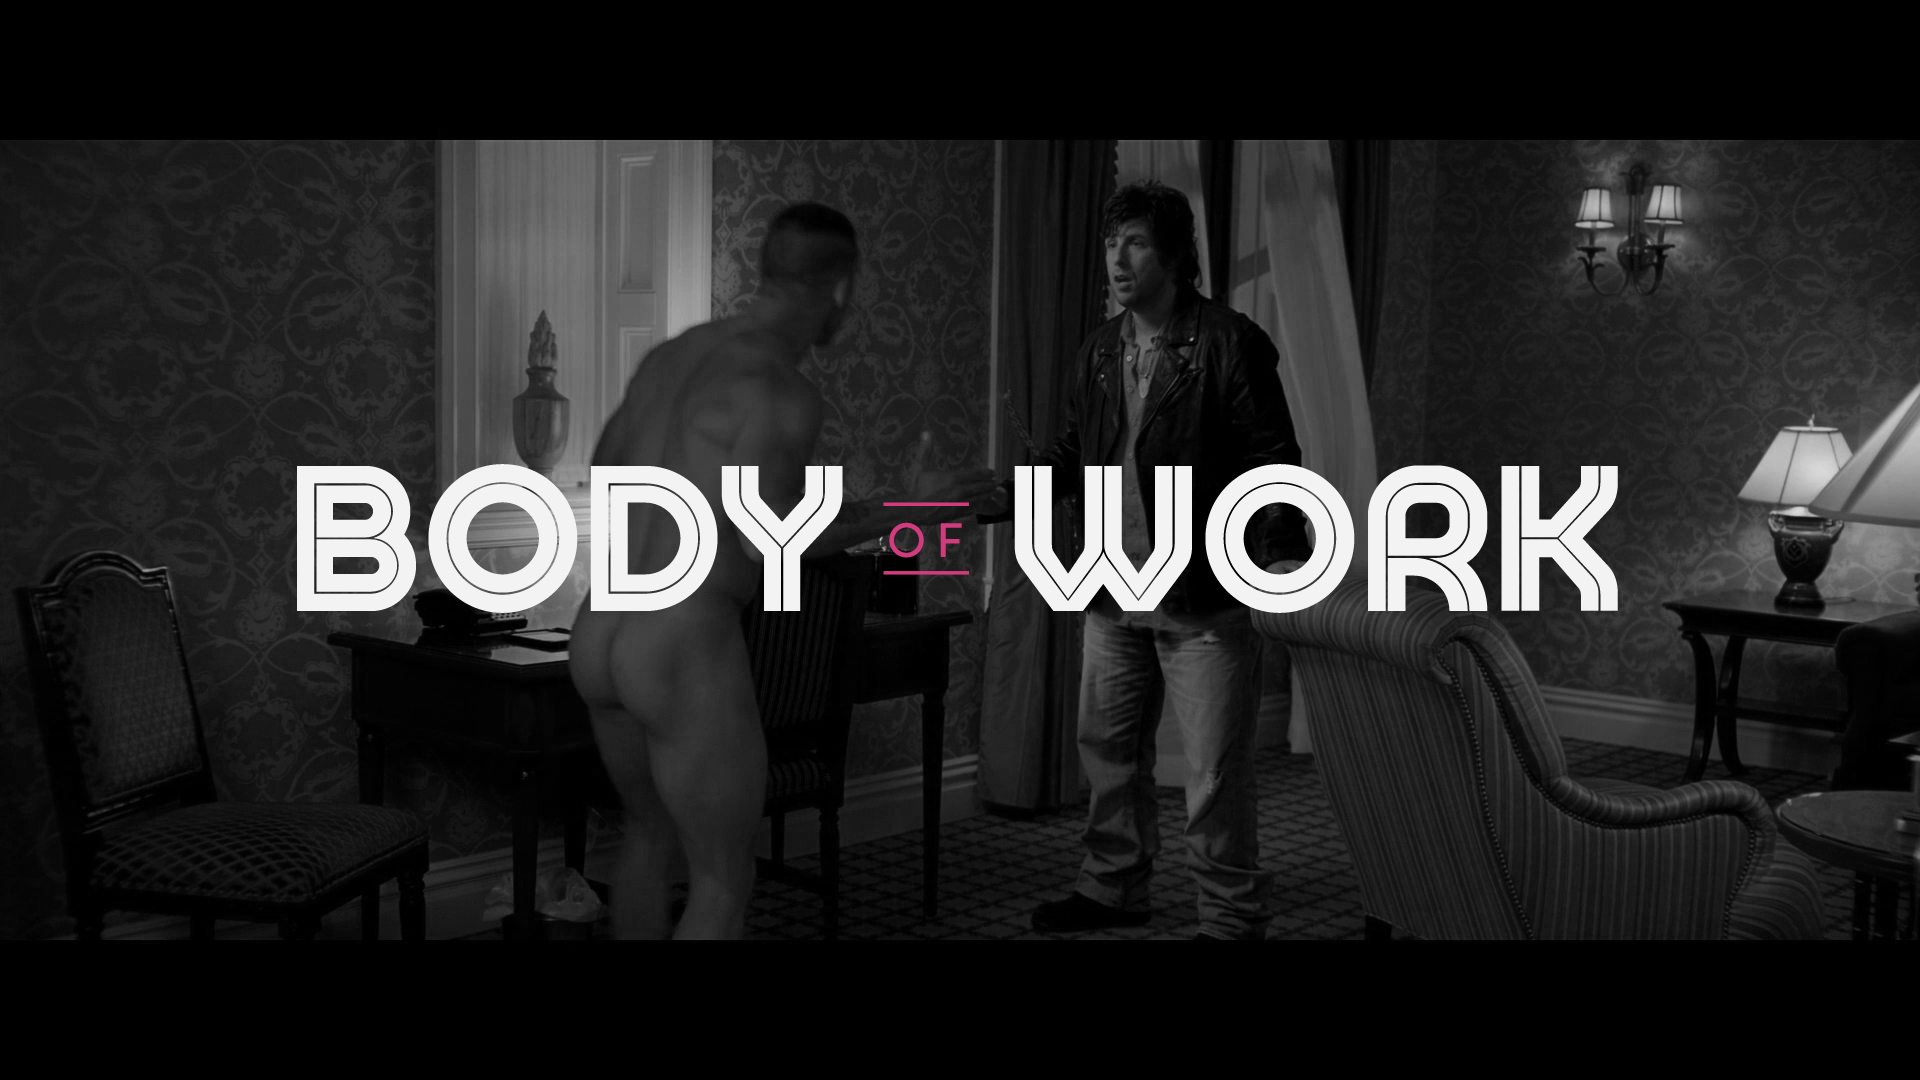 Bodyofwork actor 00 00 03 22 still002 nude preview image